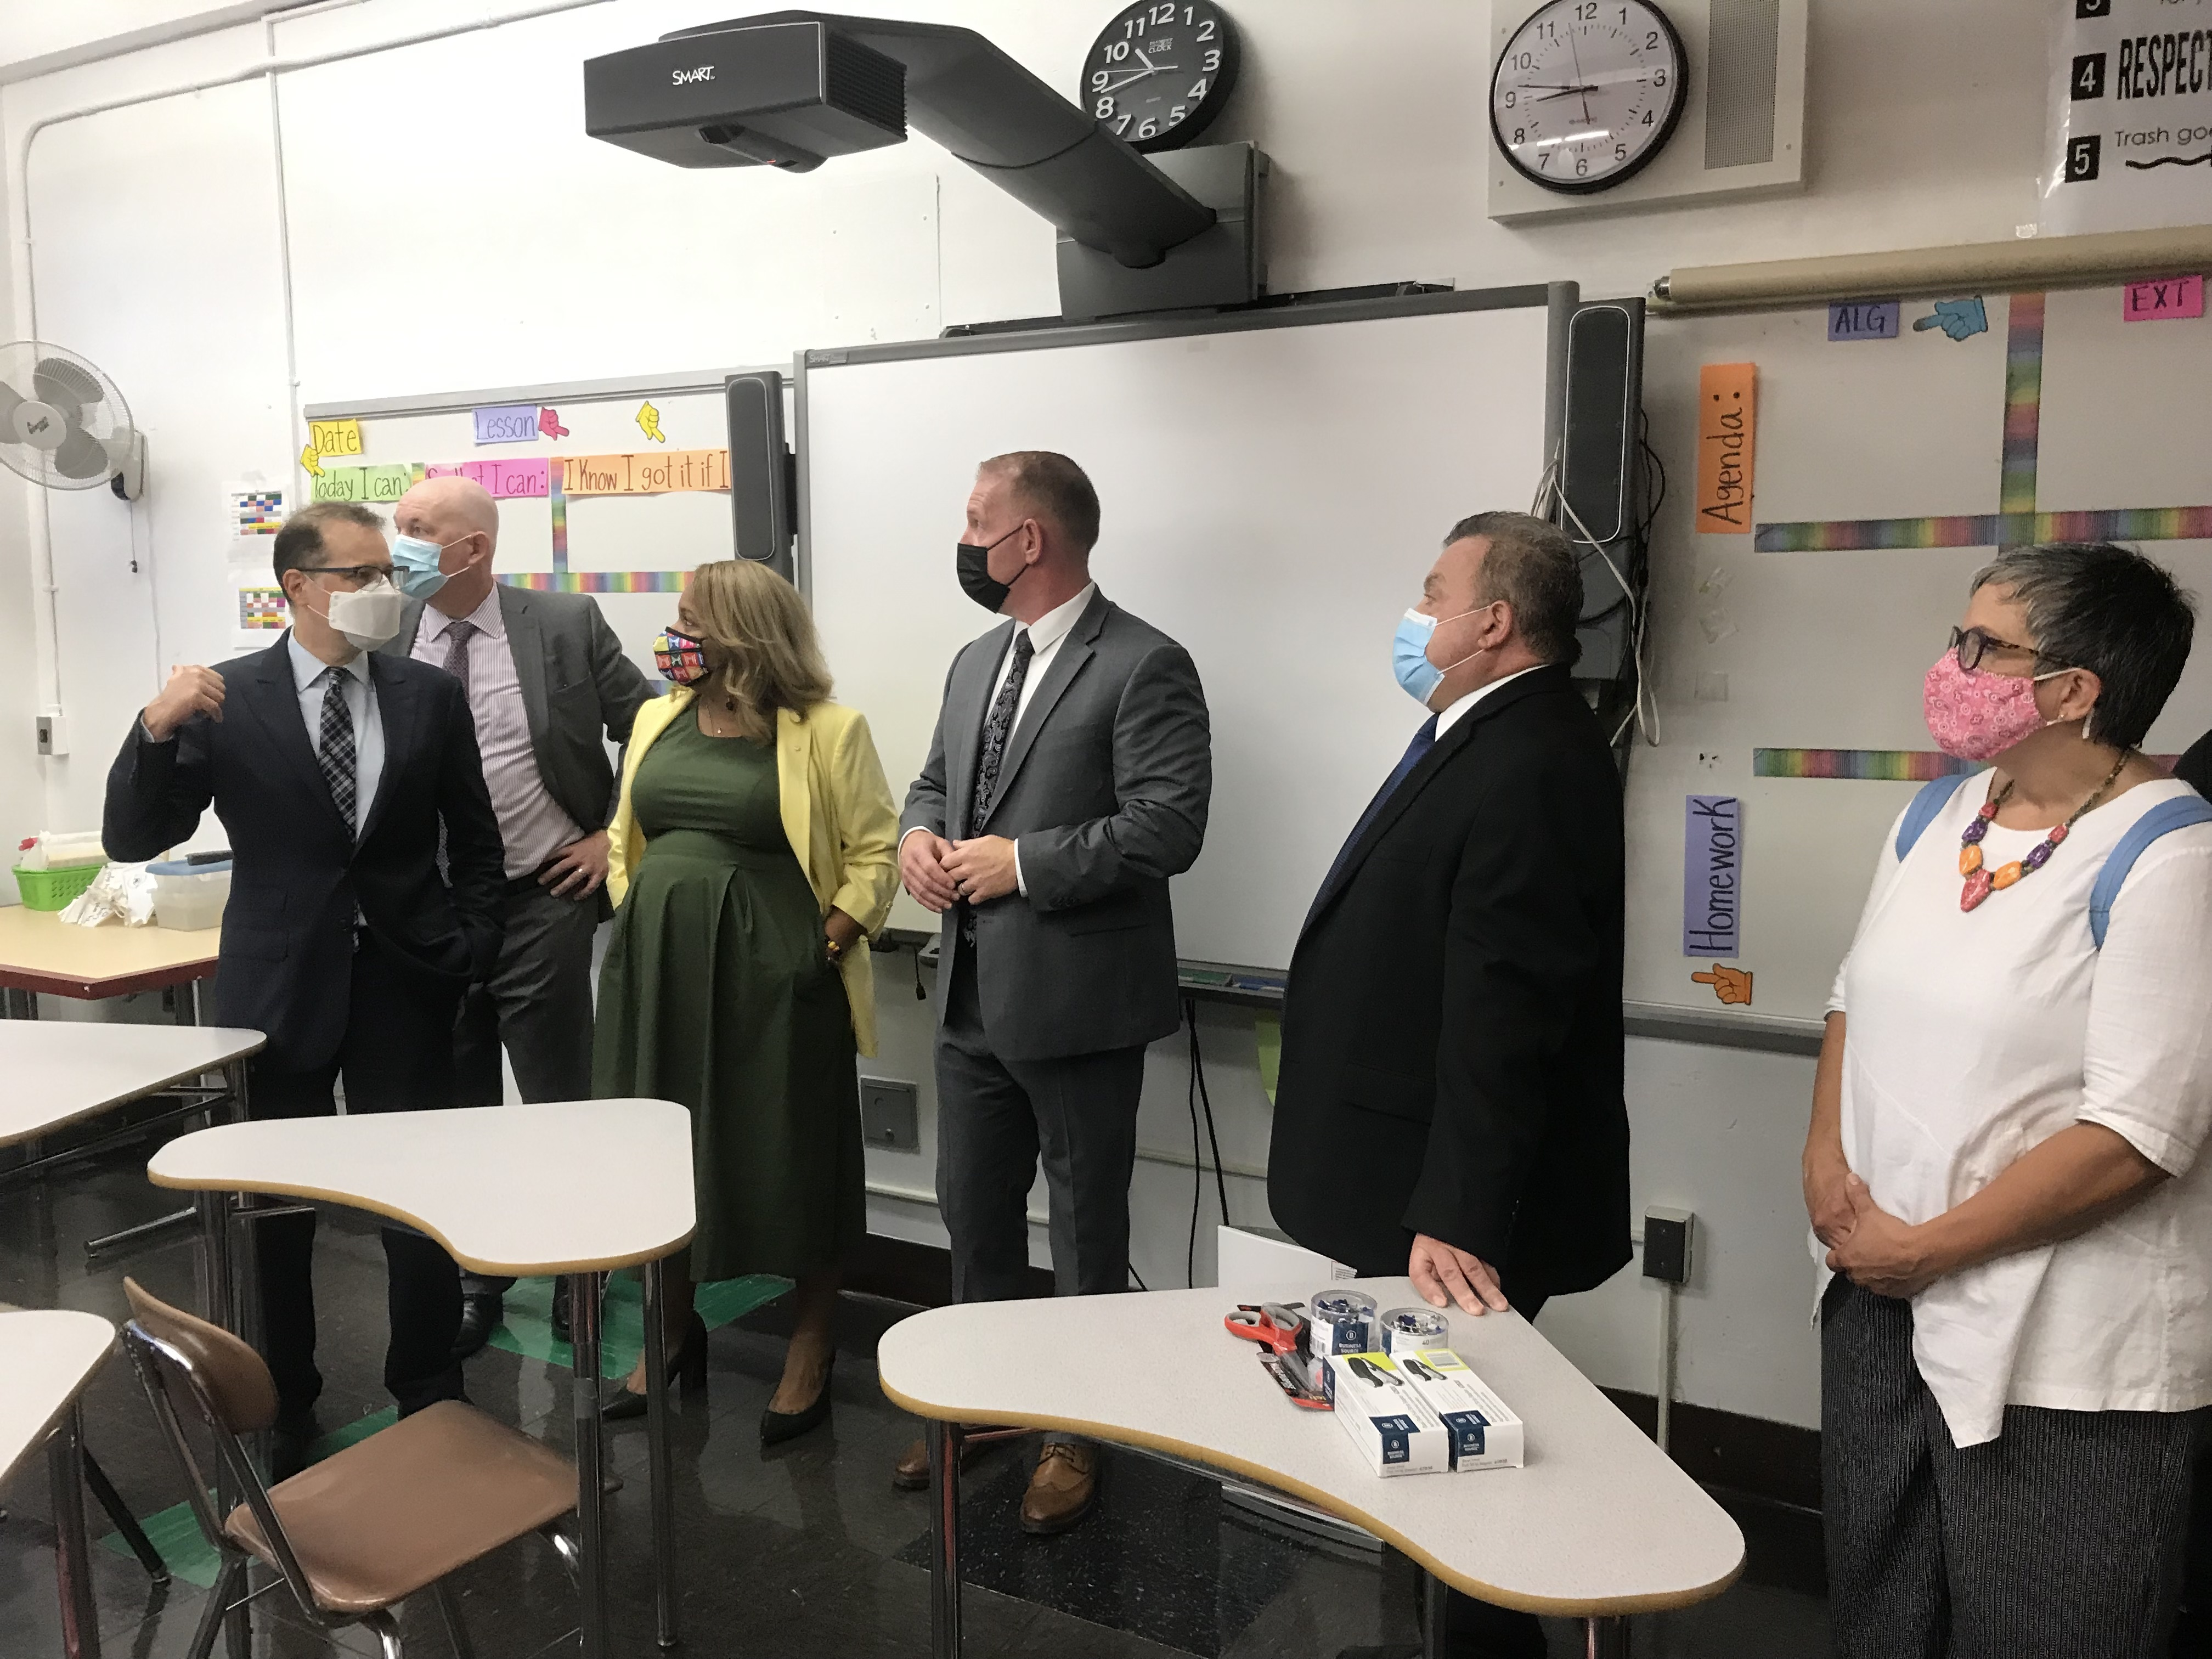 Councilman Mark Levine and NYC Schools Chancellor Meisha Porter get a tour of the safety measures at Murry Bergtraum High School from school facilities officials.